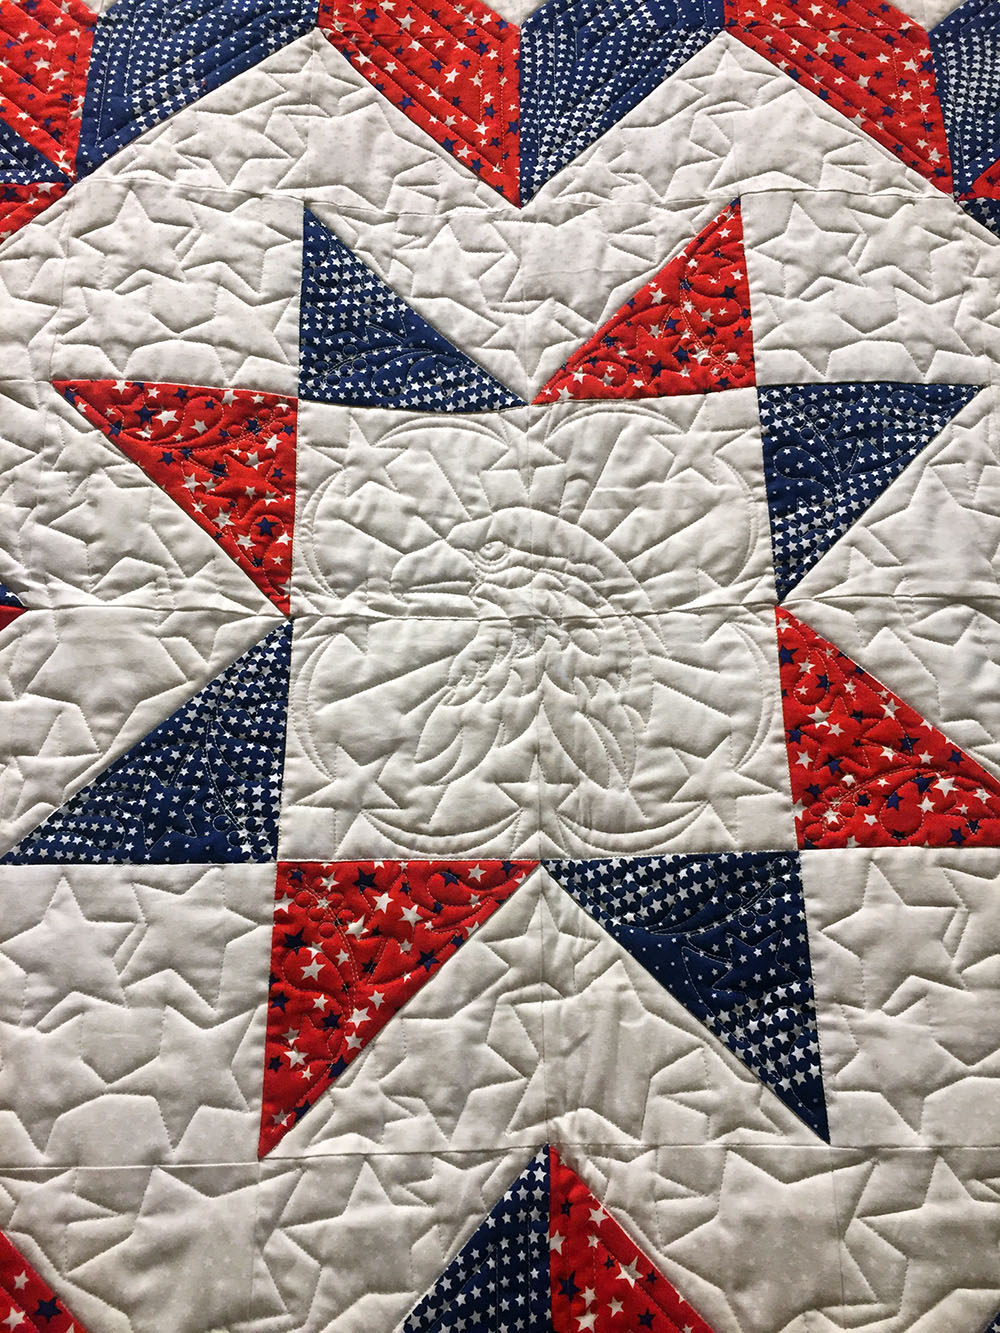 Detail of a red, white and blue embroidered quilt at the Iowa Quilt Museum in Winterset, Iowa